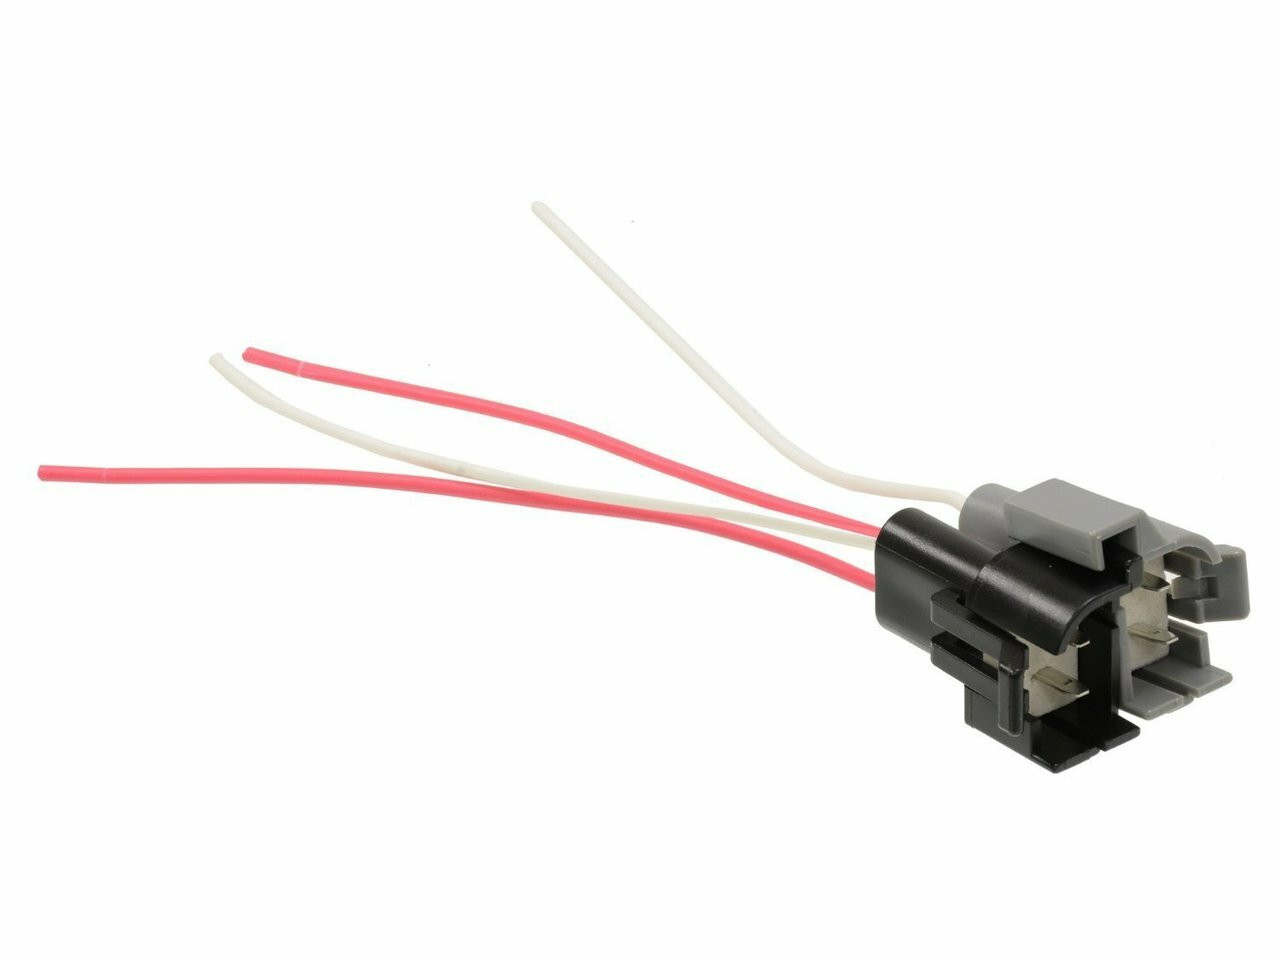 hight resolution of michgian motorsports lt1 ignition coil wire harness set tpi tbi connector fits gm camaro firebird